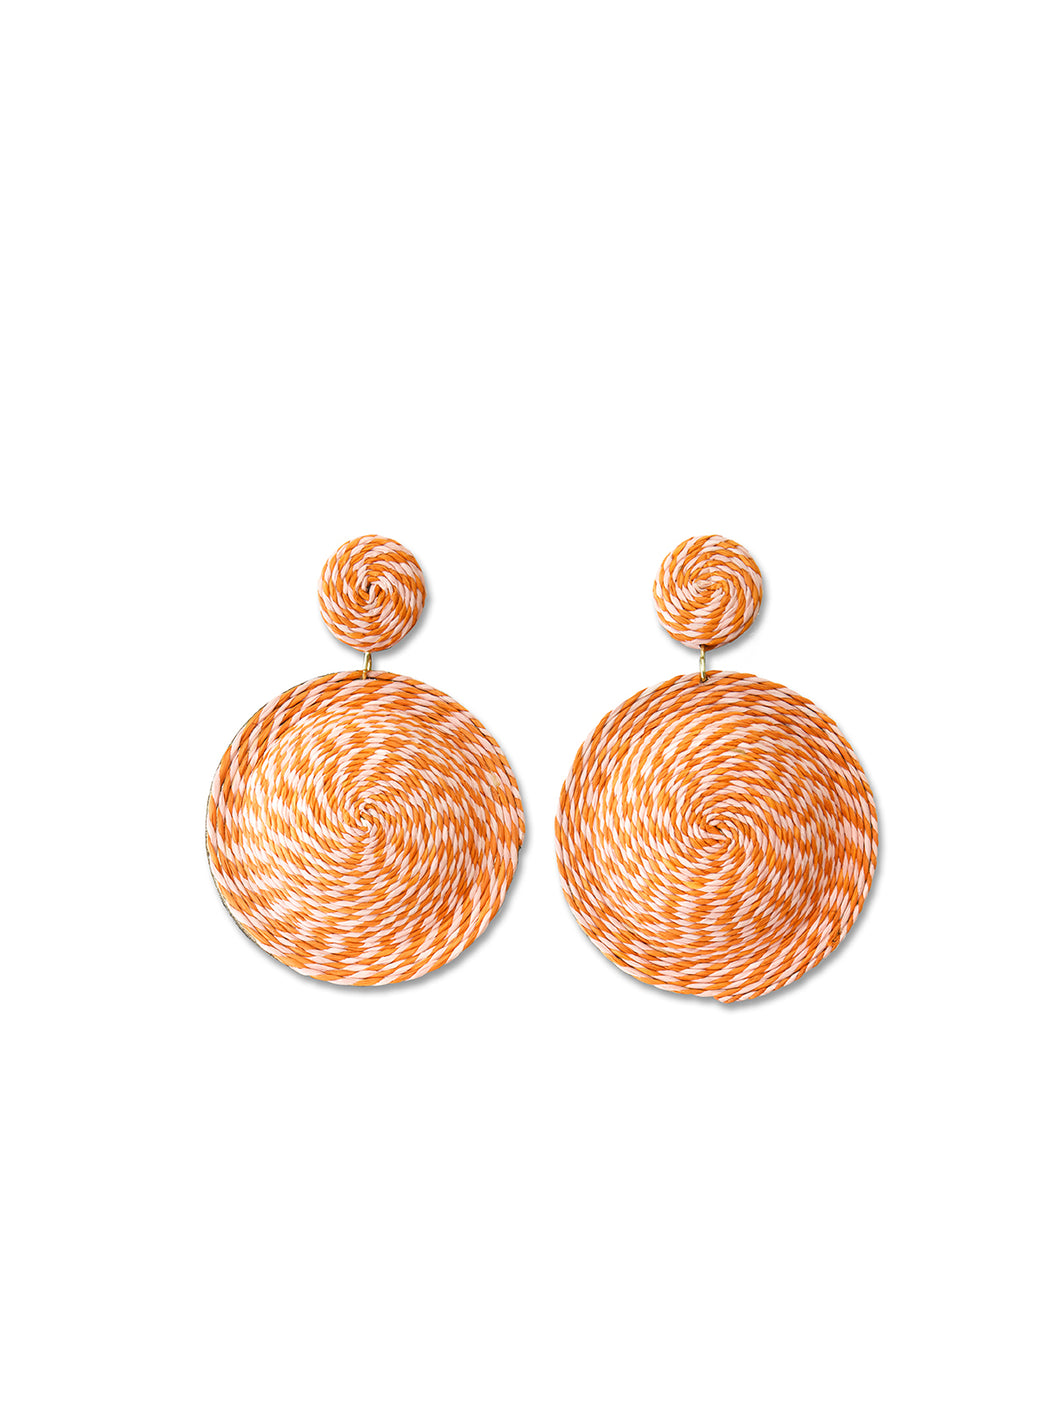 Peach & Rust Woven Disc Earrings